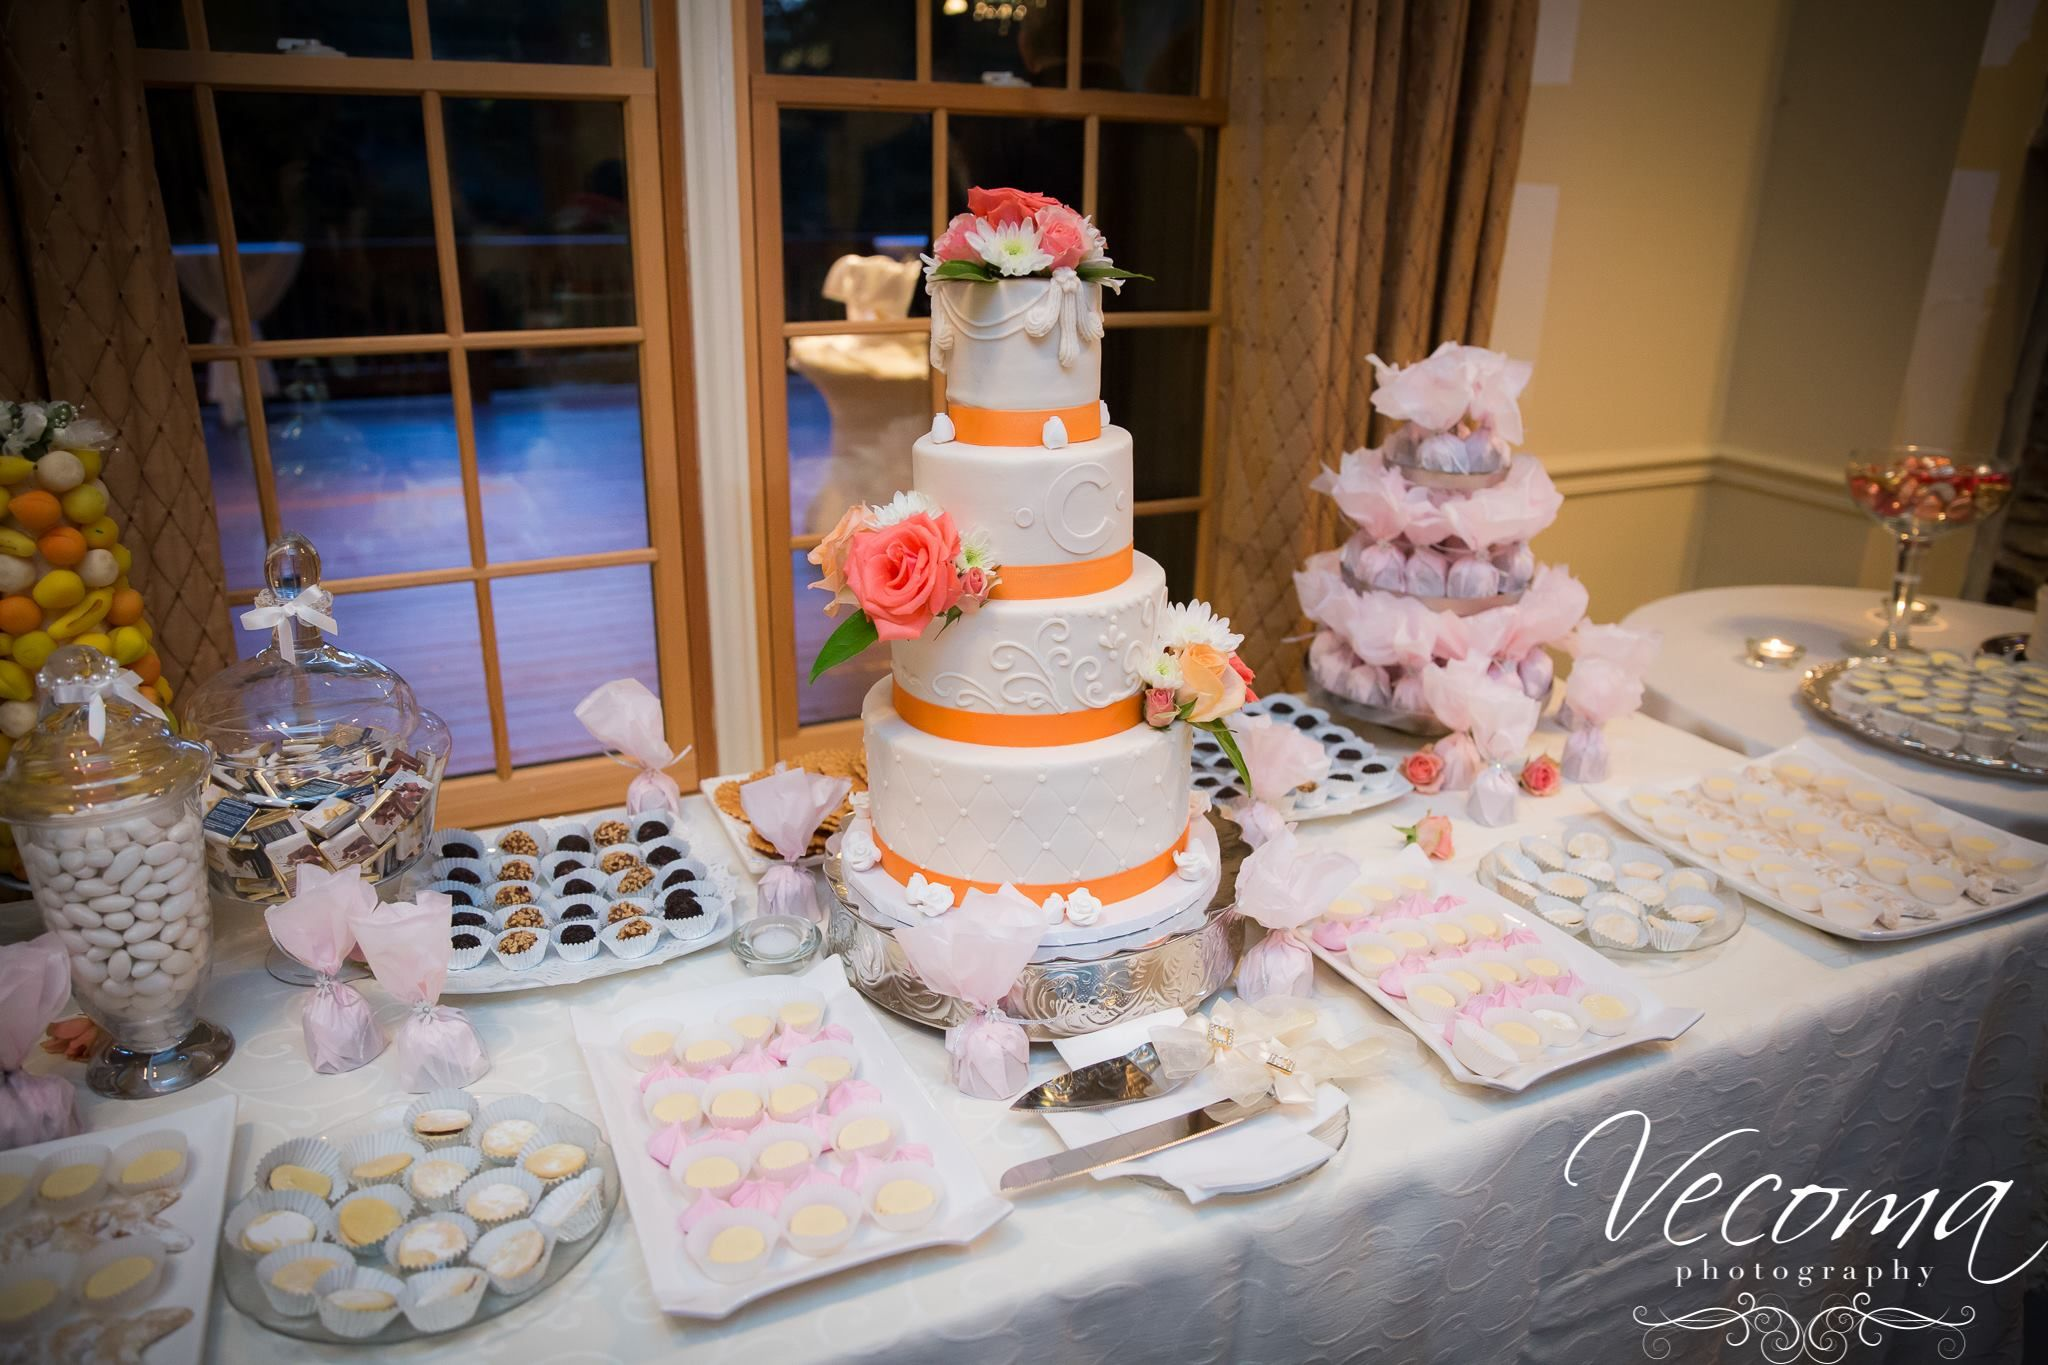 This sweet #dessertbar is deliciously tempting for guests!